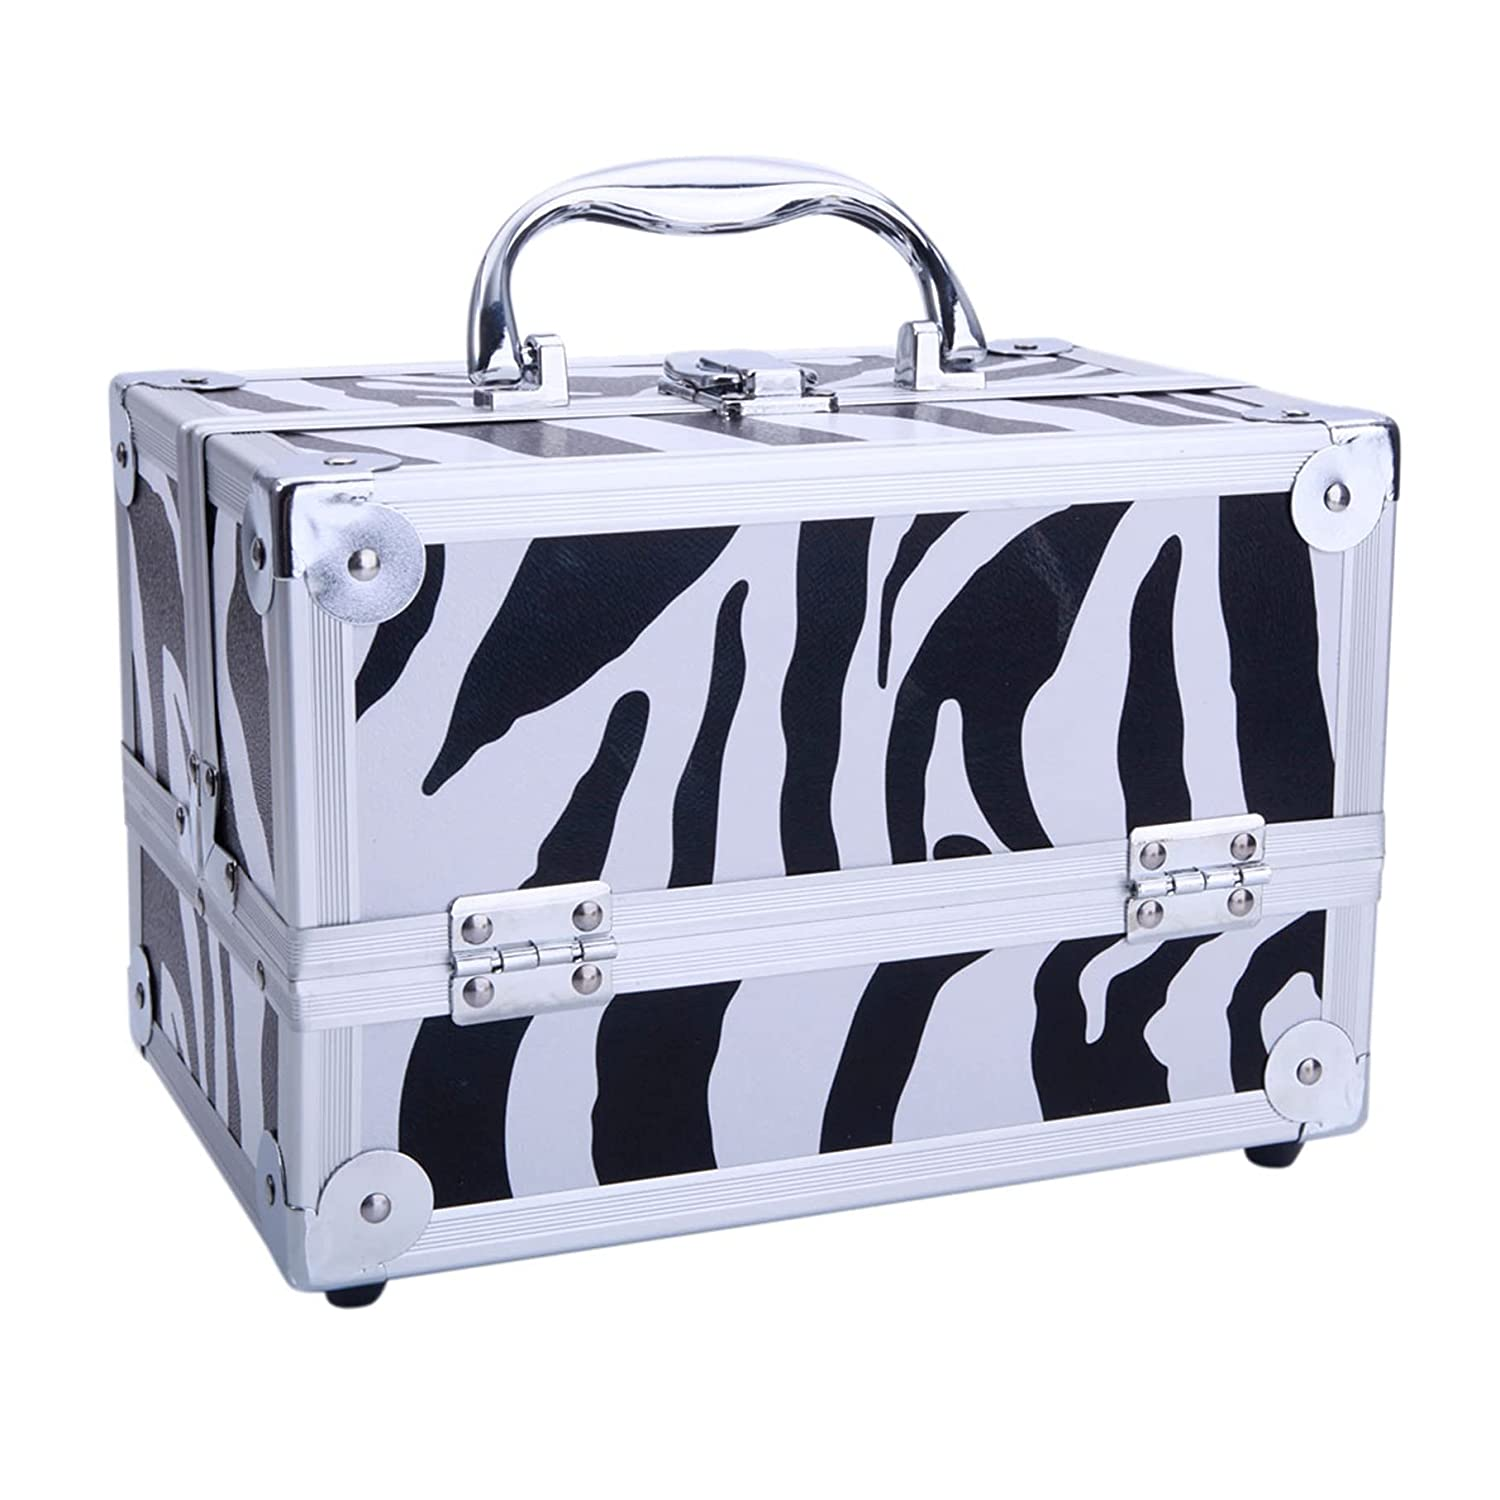 Selling and selling SM-2176 Aluminum Makeup Train Case Jewelry Box Wholesale Cosmetic Organize